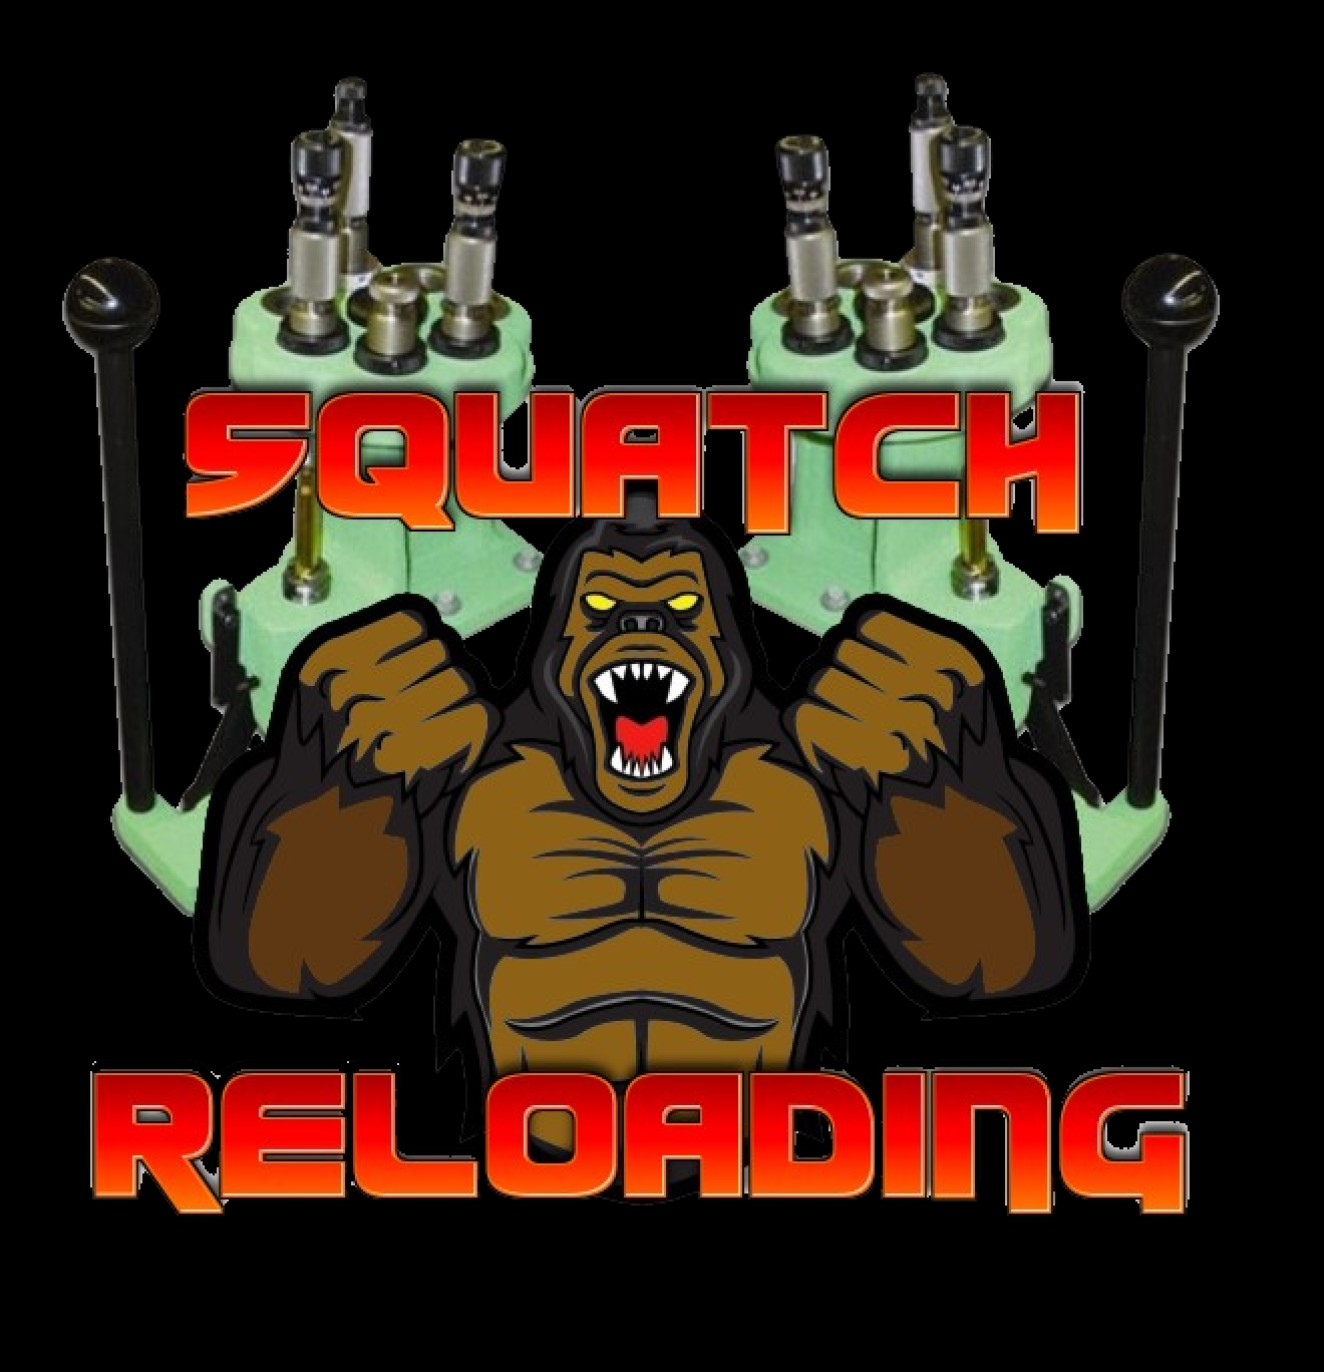 Squatch Reloading - The Squatch Chronicles - Episode 2 2